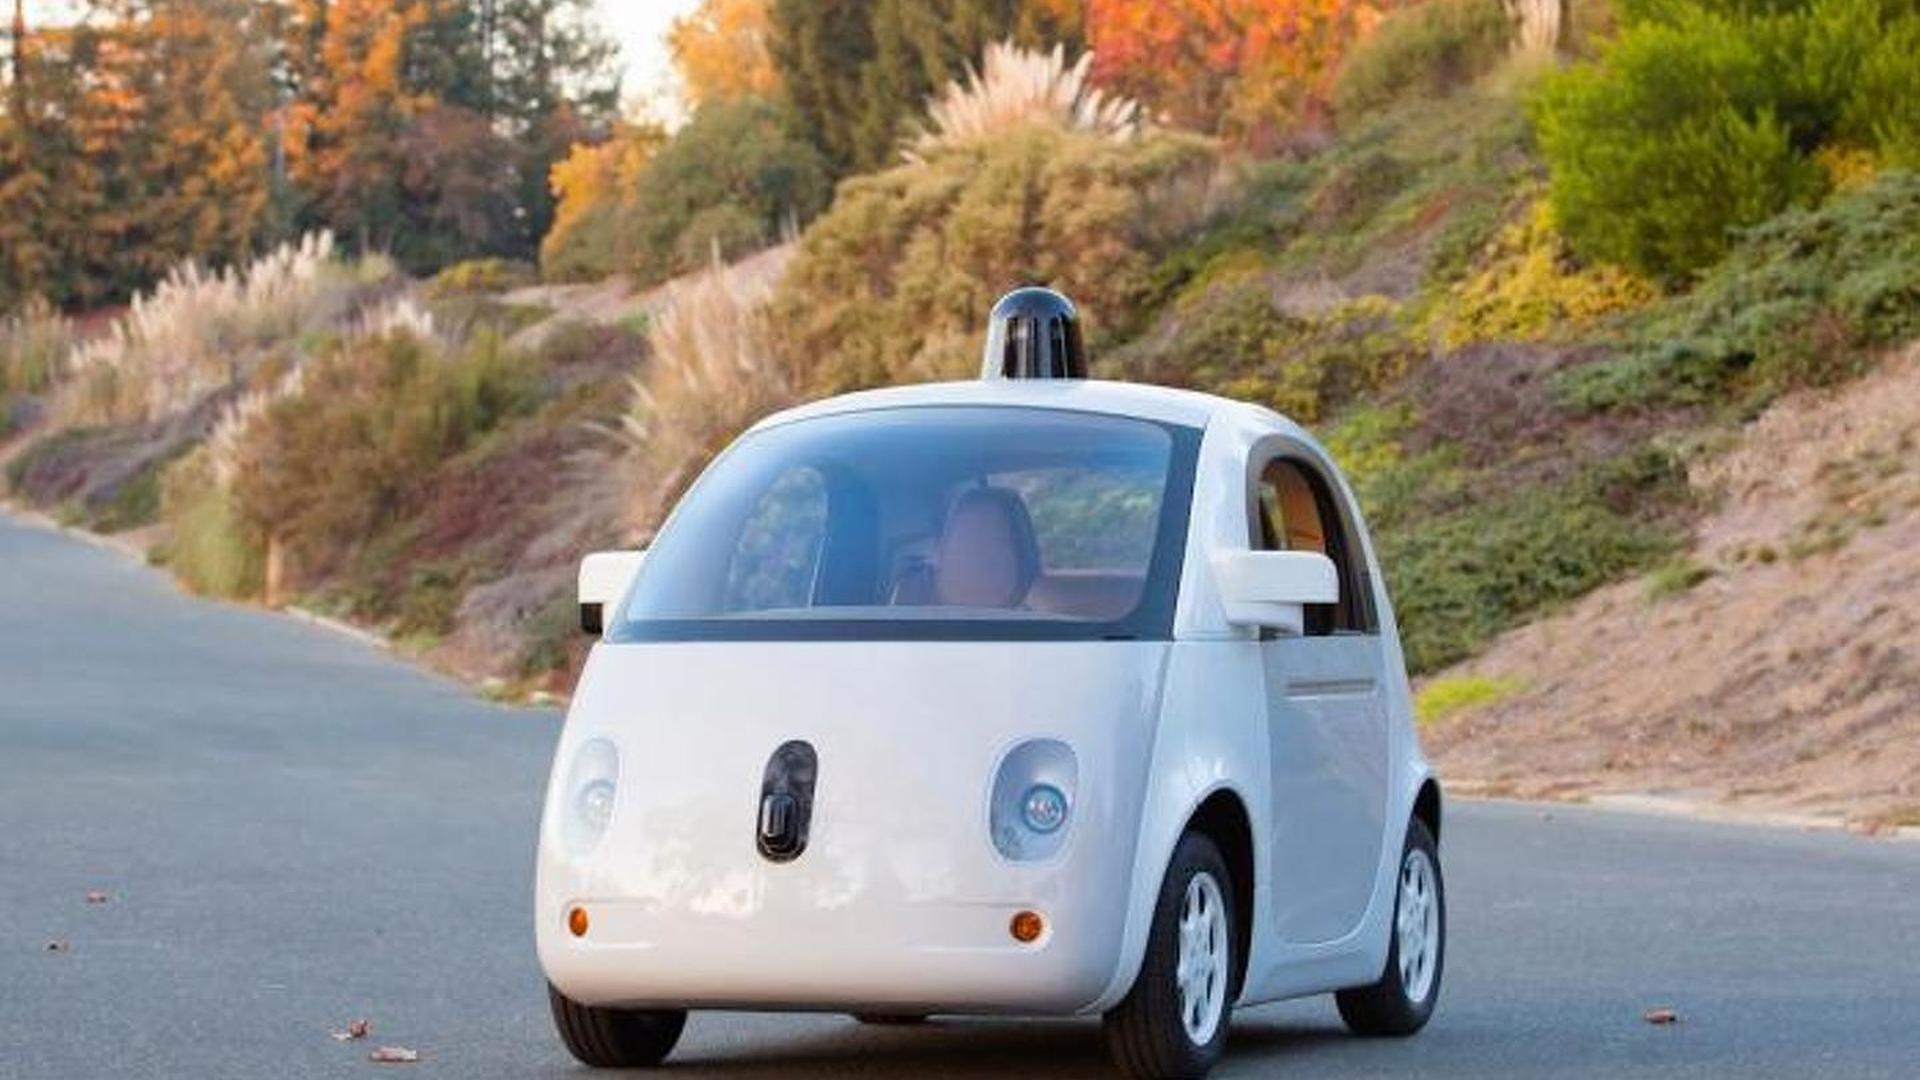 Google reveals its self-driving car in production form